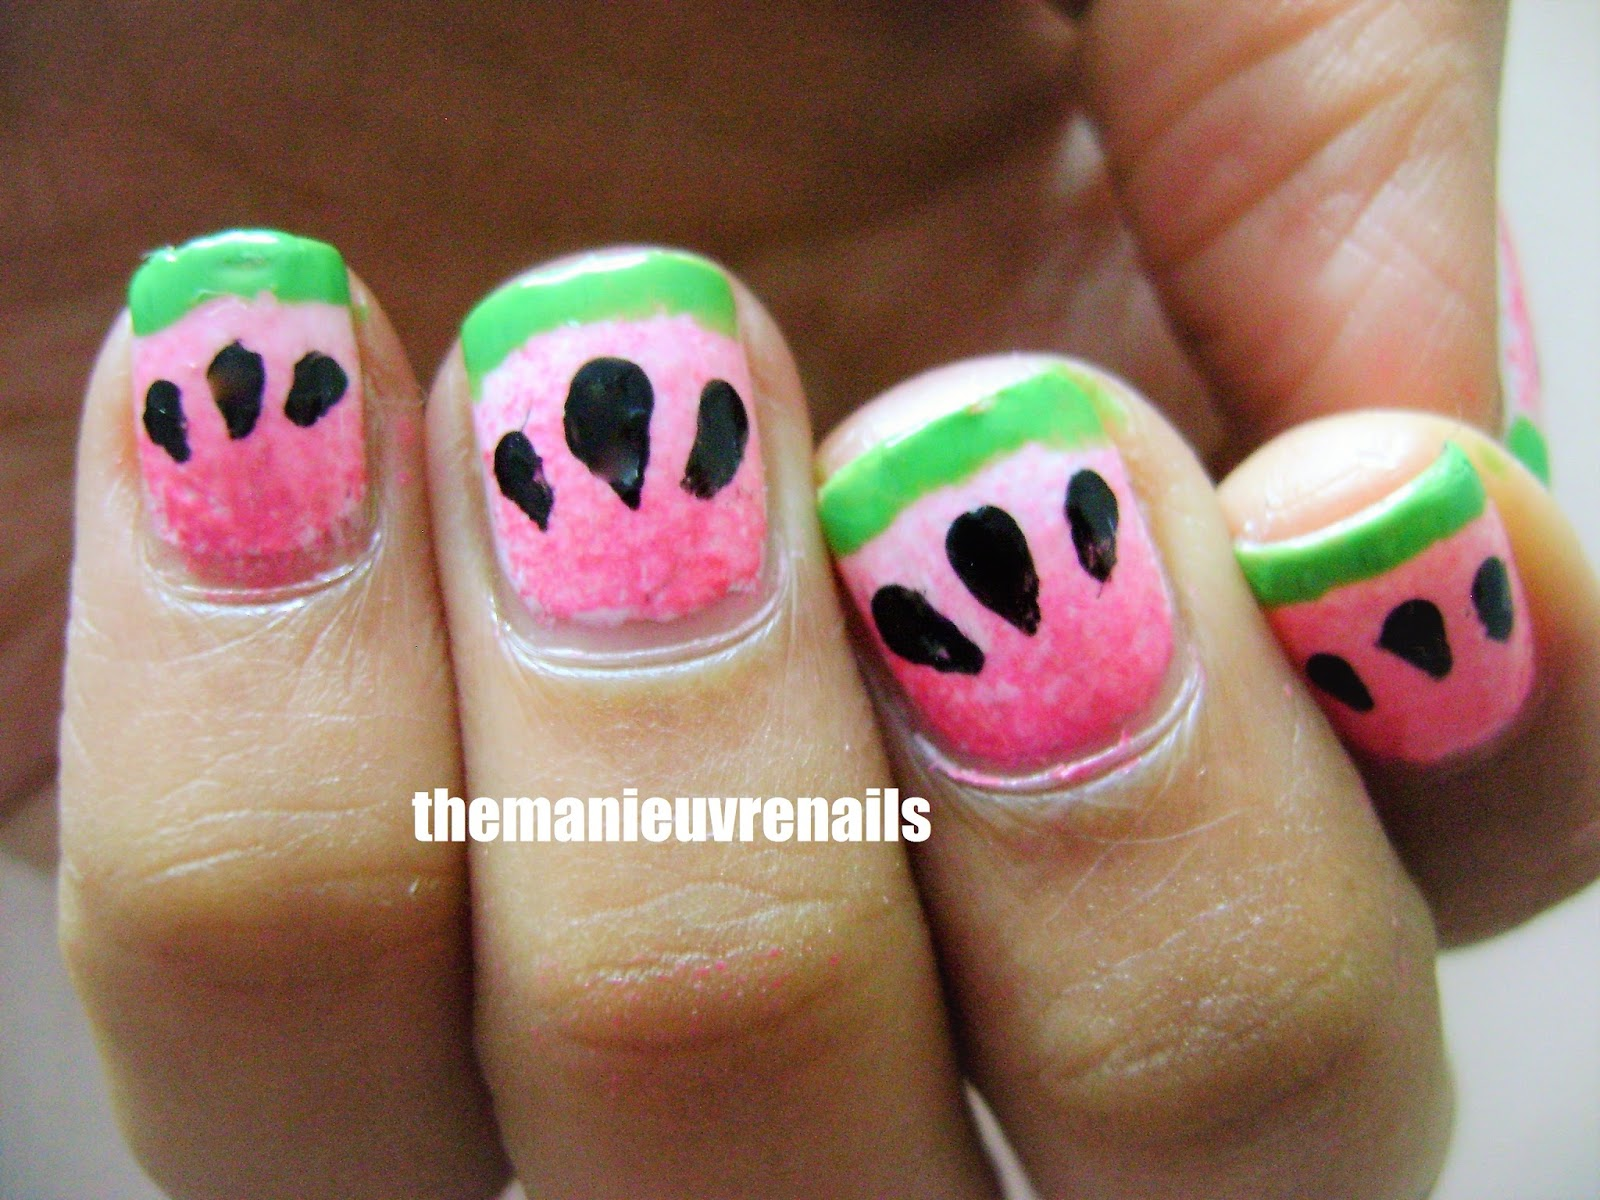 The Manieuvre Nails | Nail Art Blog: Watermelon Gradient Nail art